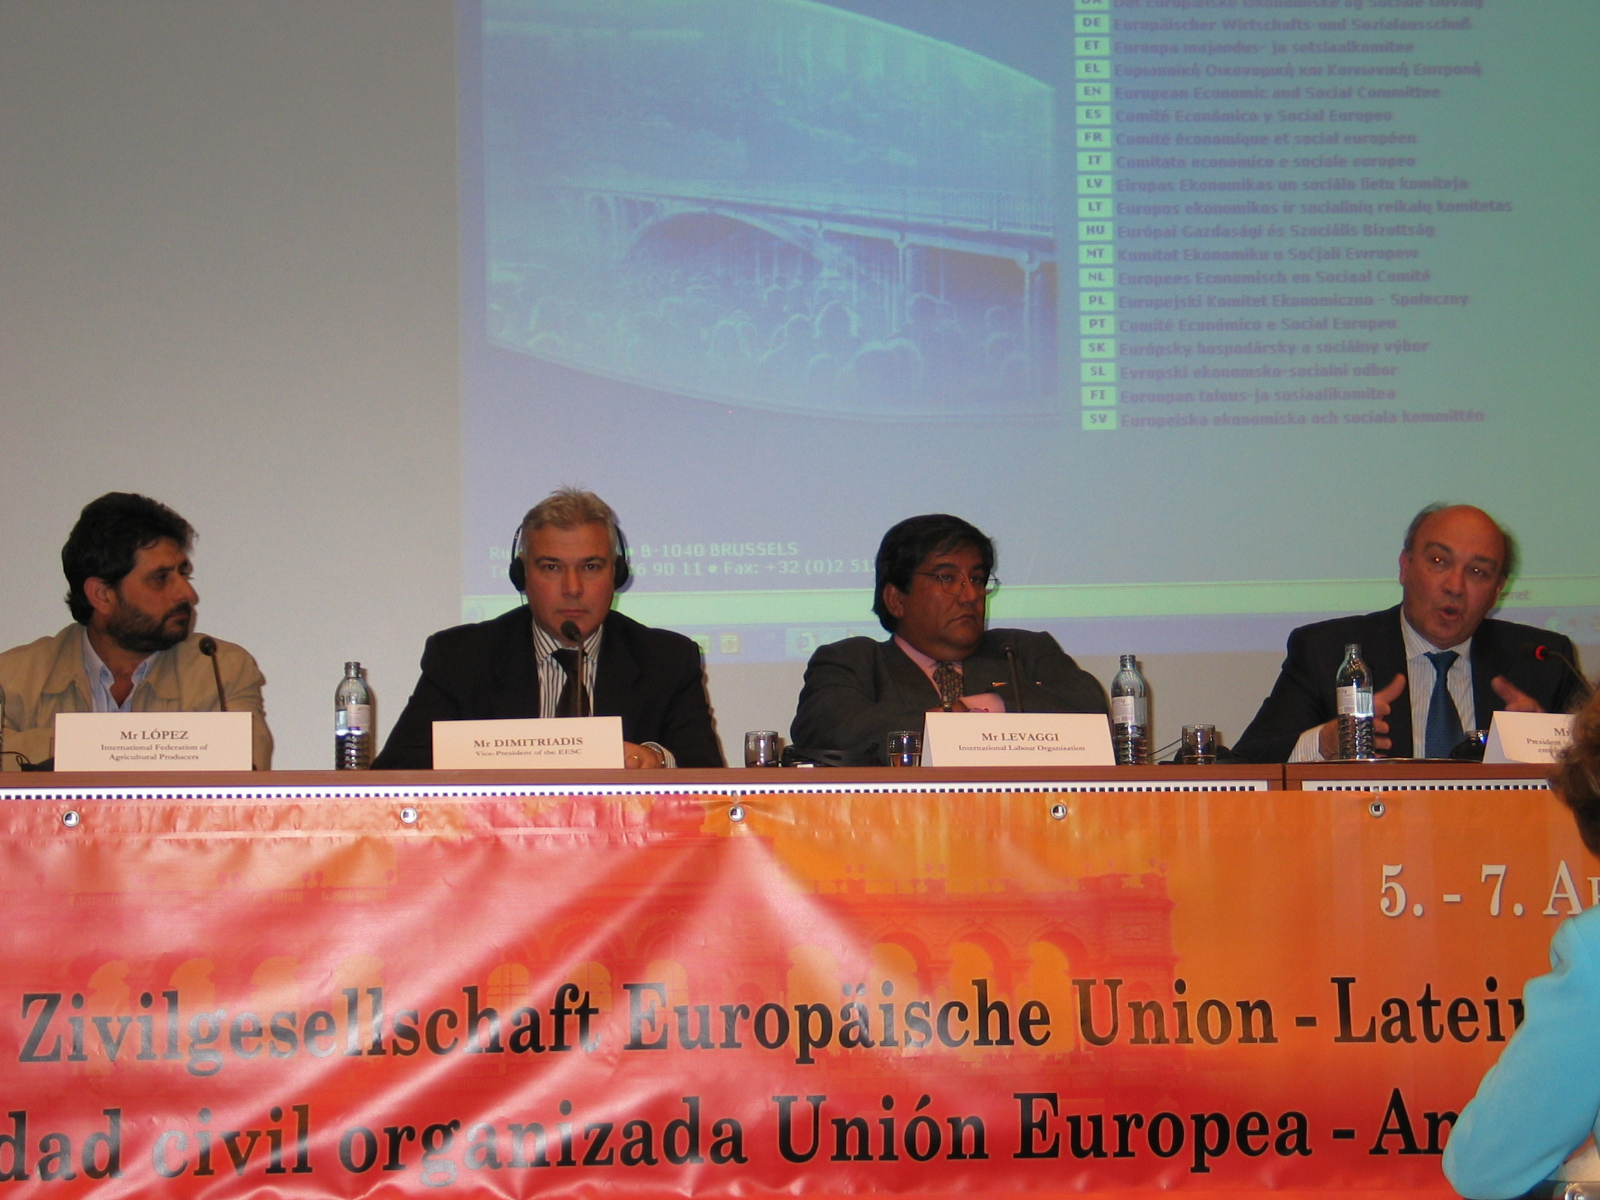 Second session : Mr. Dimitriadis, Mr. Lacasa, Mr. Levaggi, Mr. López